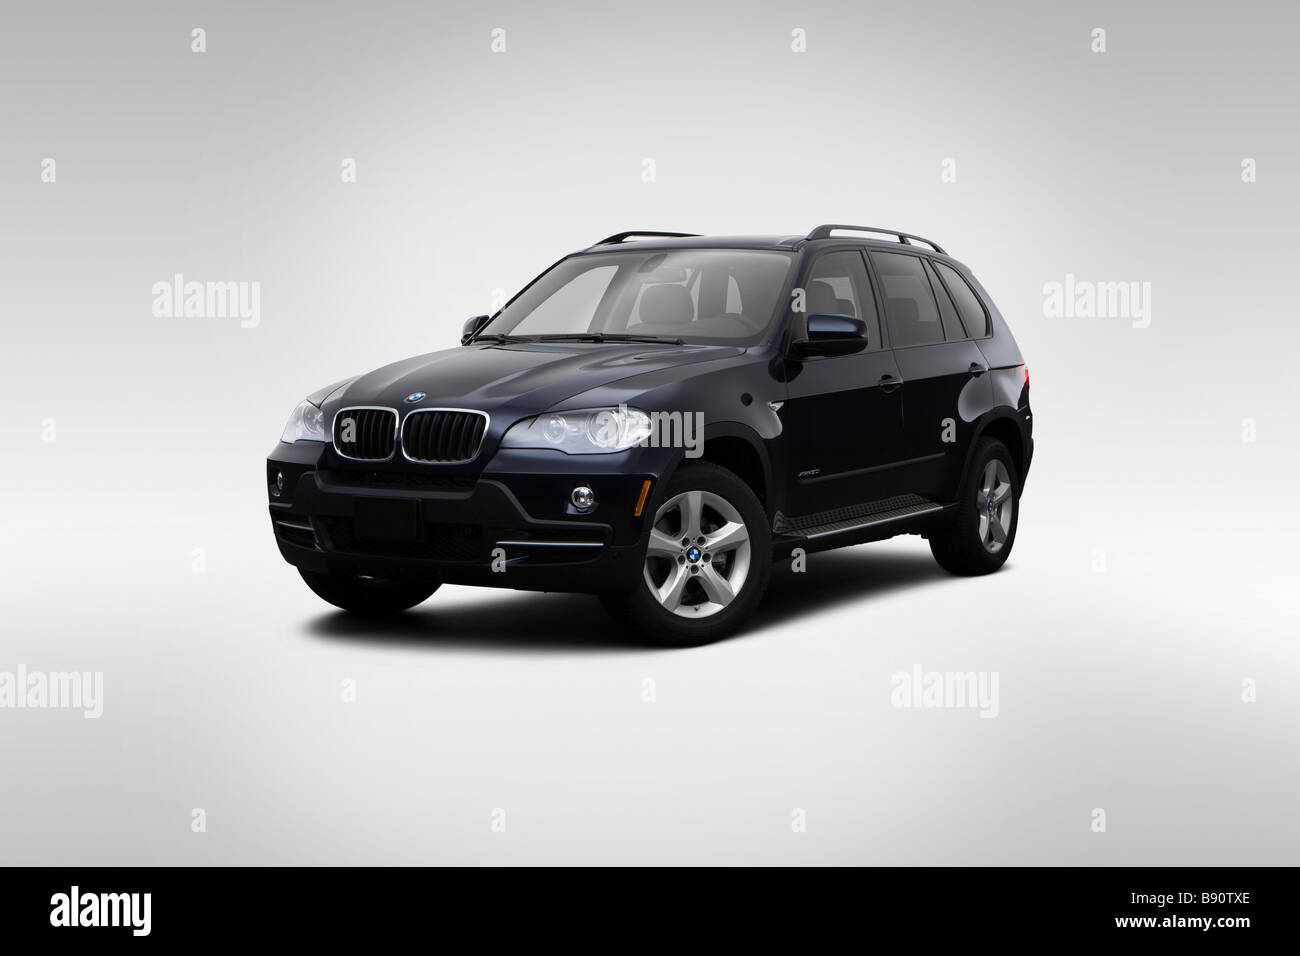 2009 BMW X5 3.0i in Blue - Front angle view - Stock Image